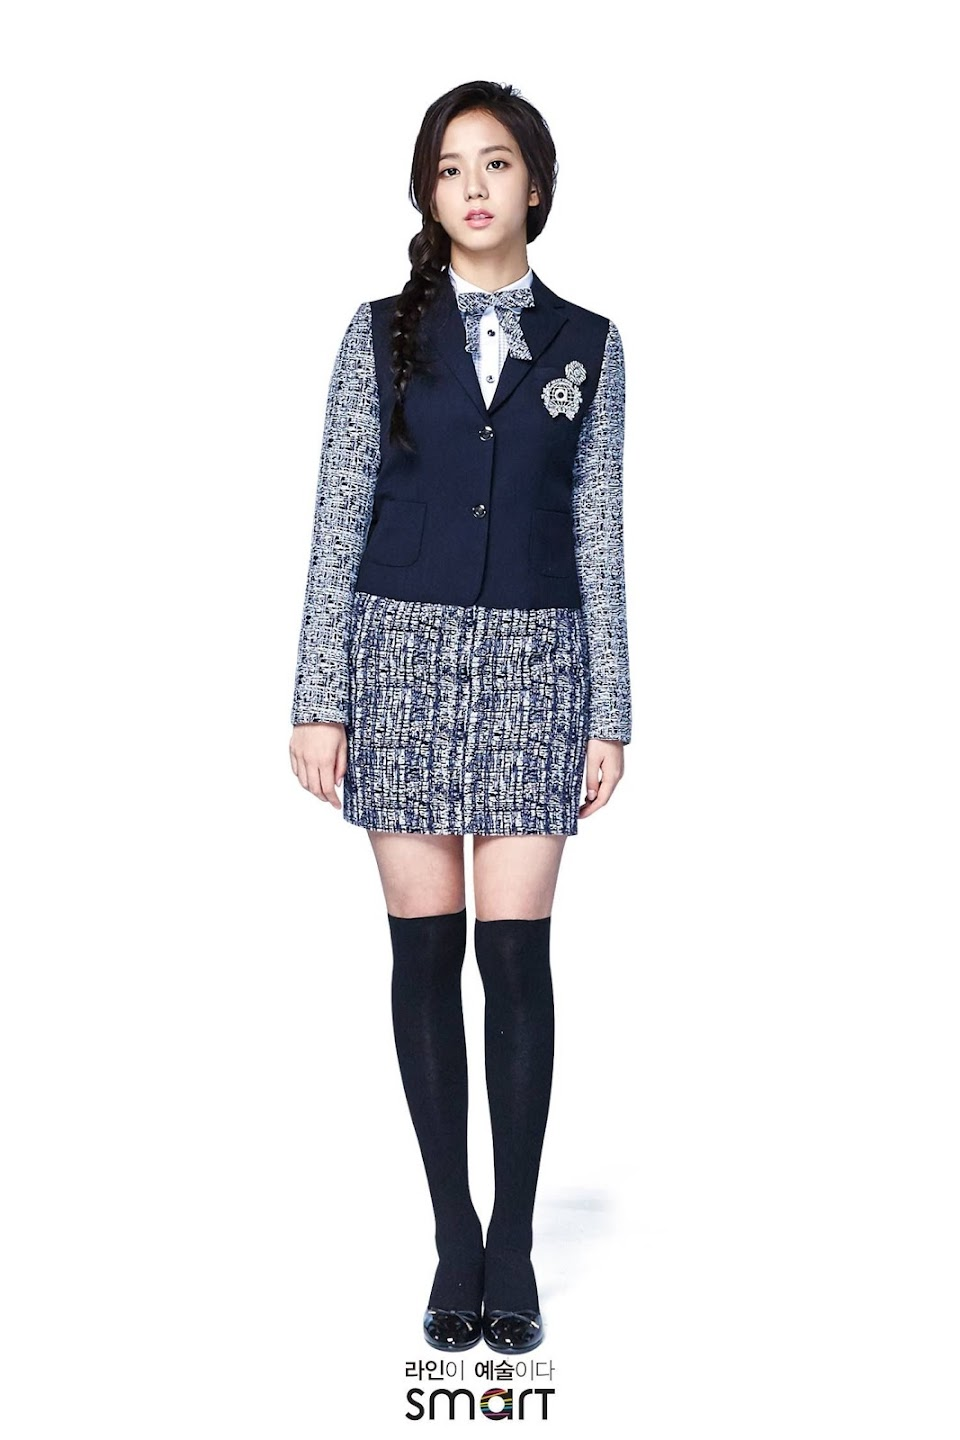 Jisoo uniform